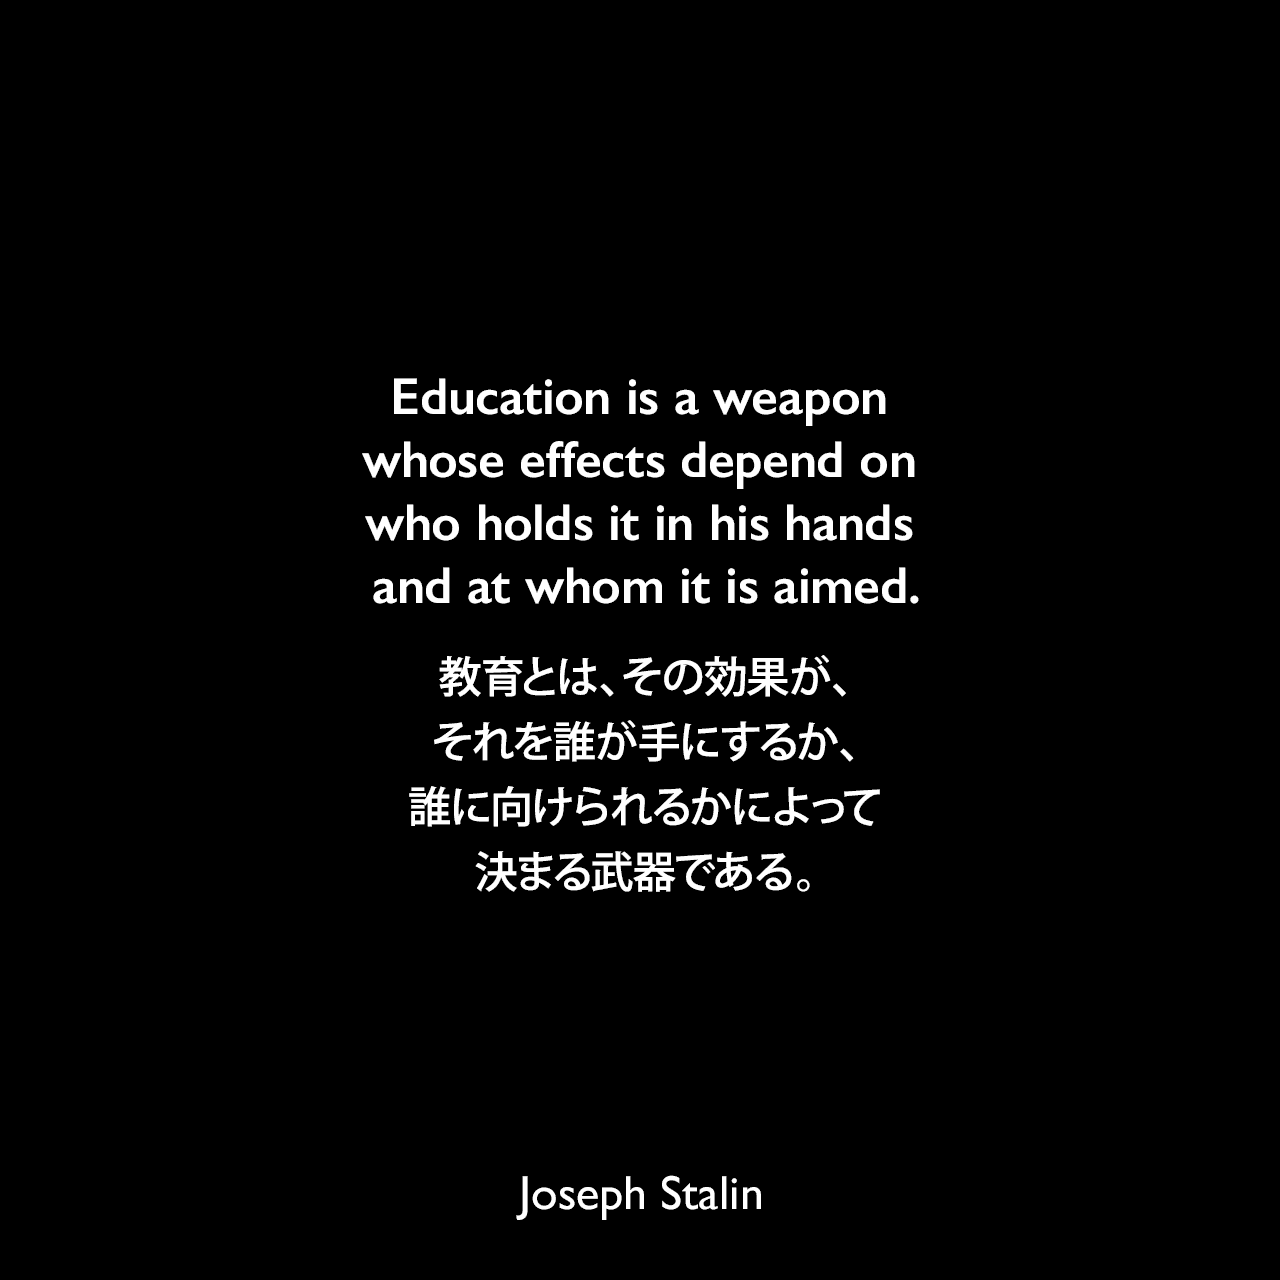 Education is a weapon whose effects depend on who holds it in his hands and at whom it is aimed.教育とは、その効果が、それを誰が手にするか、誰に向けられるかによって決まる武器である。- 1937年9月 H.G.ウェルズとのインタビューよりJoseph Stalin